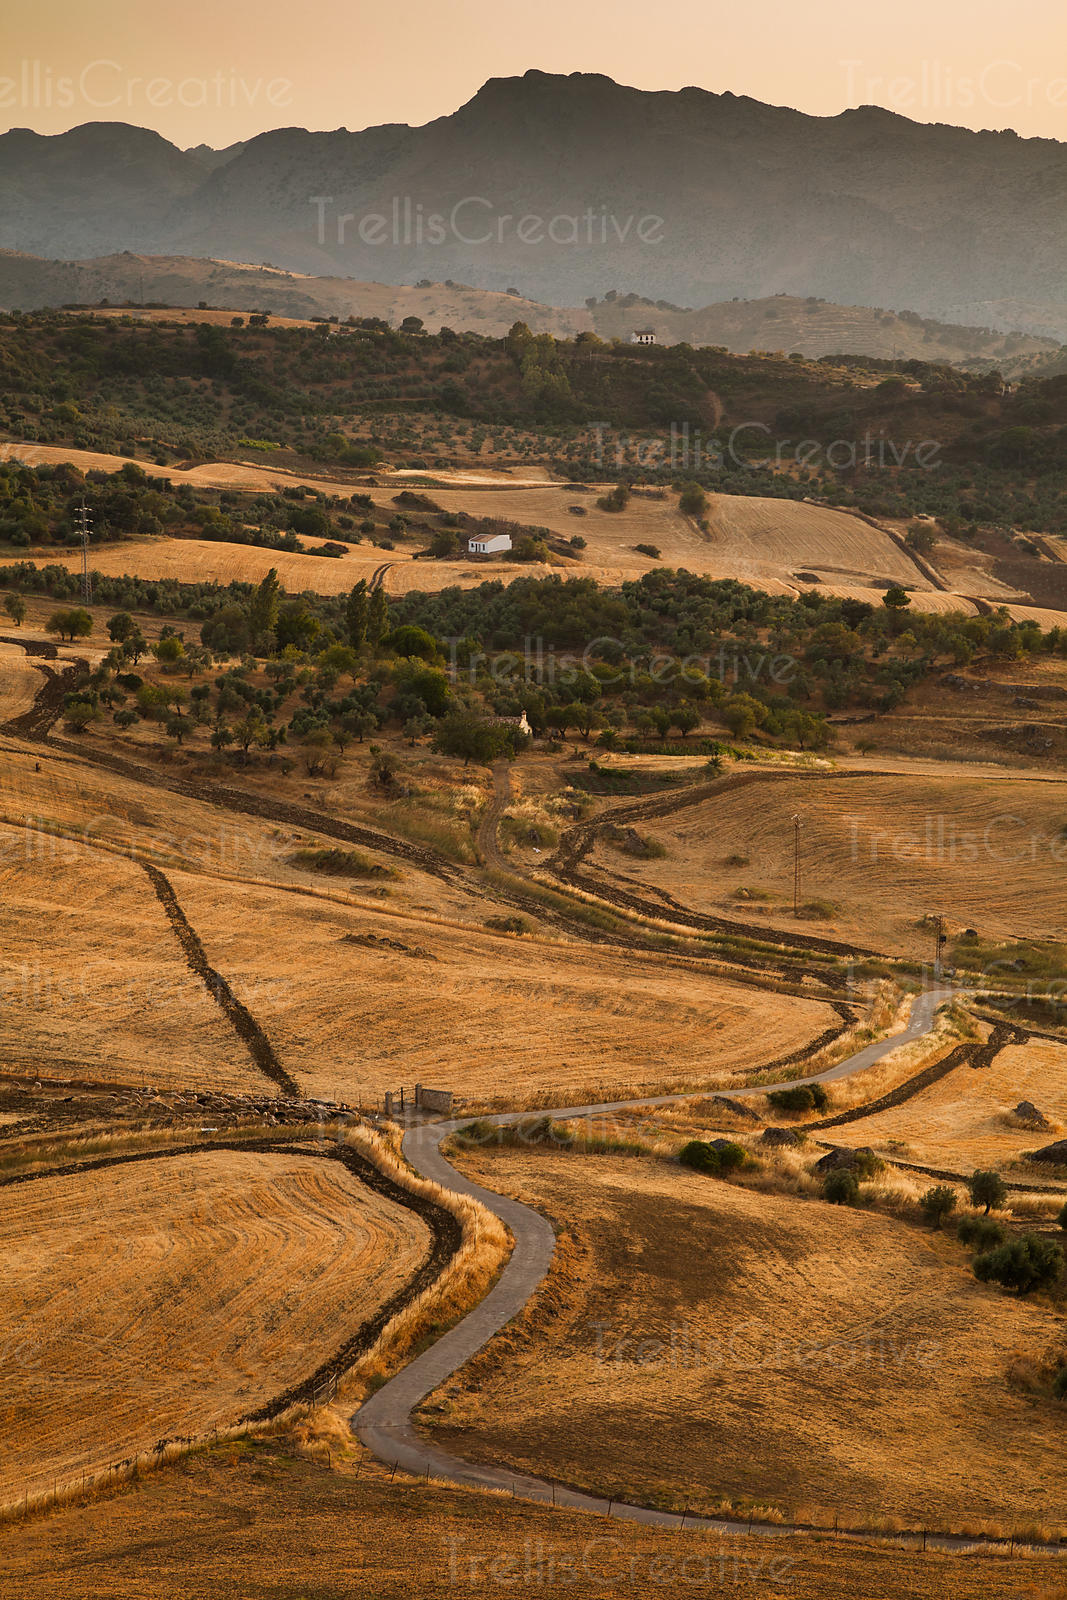 A curved road cuts through the agricultural fields in Rhonda, Spain